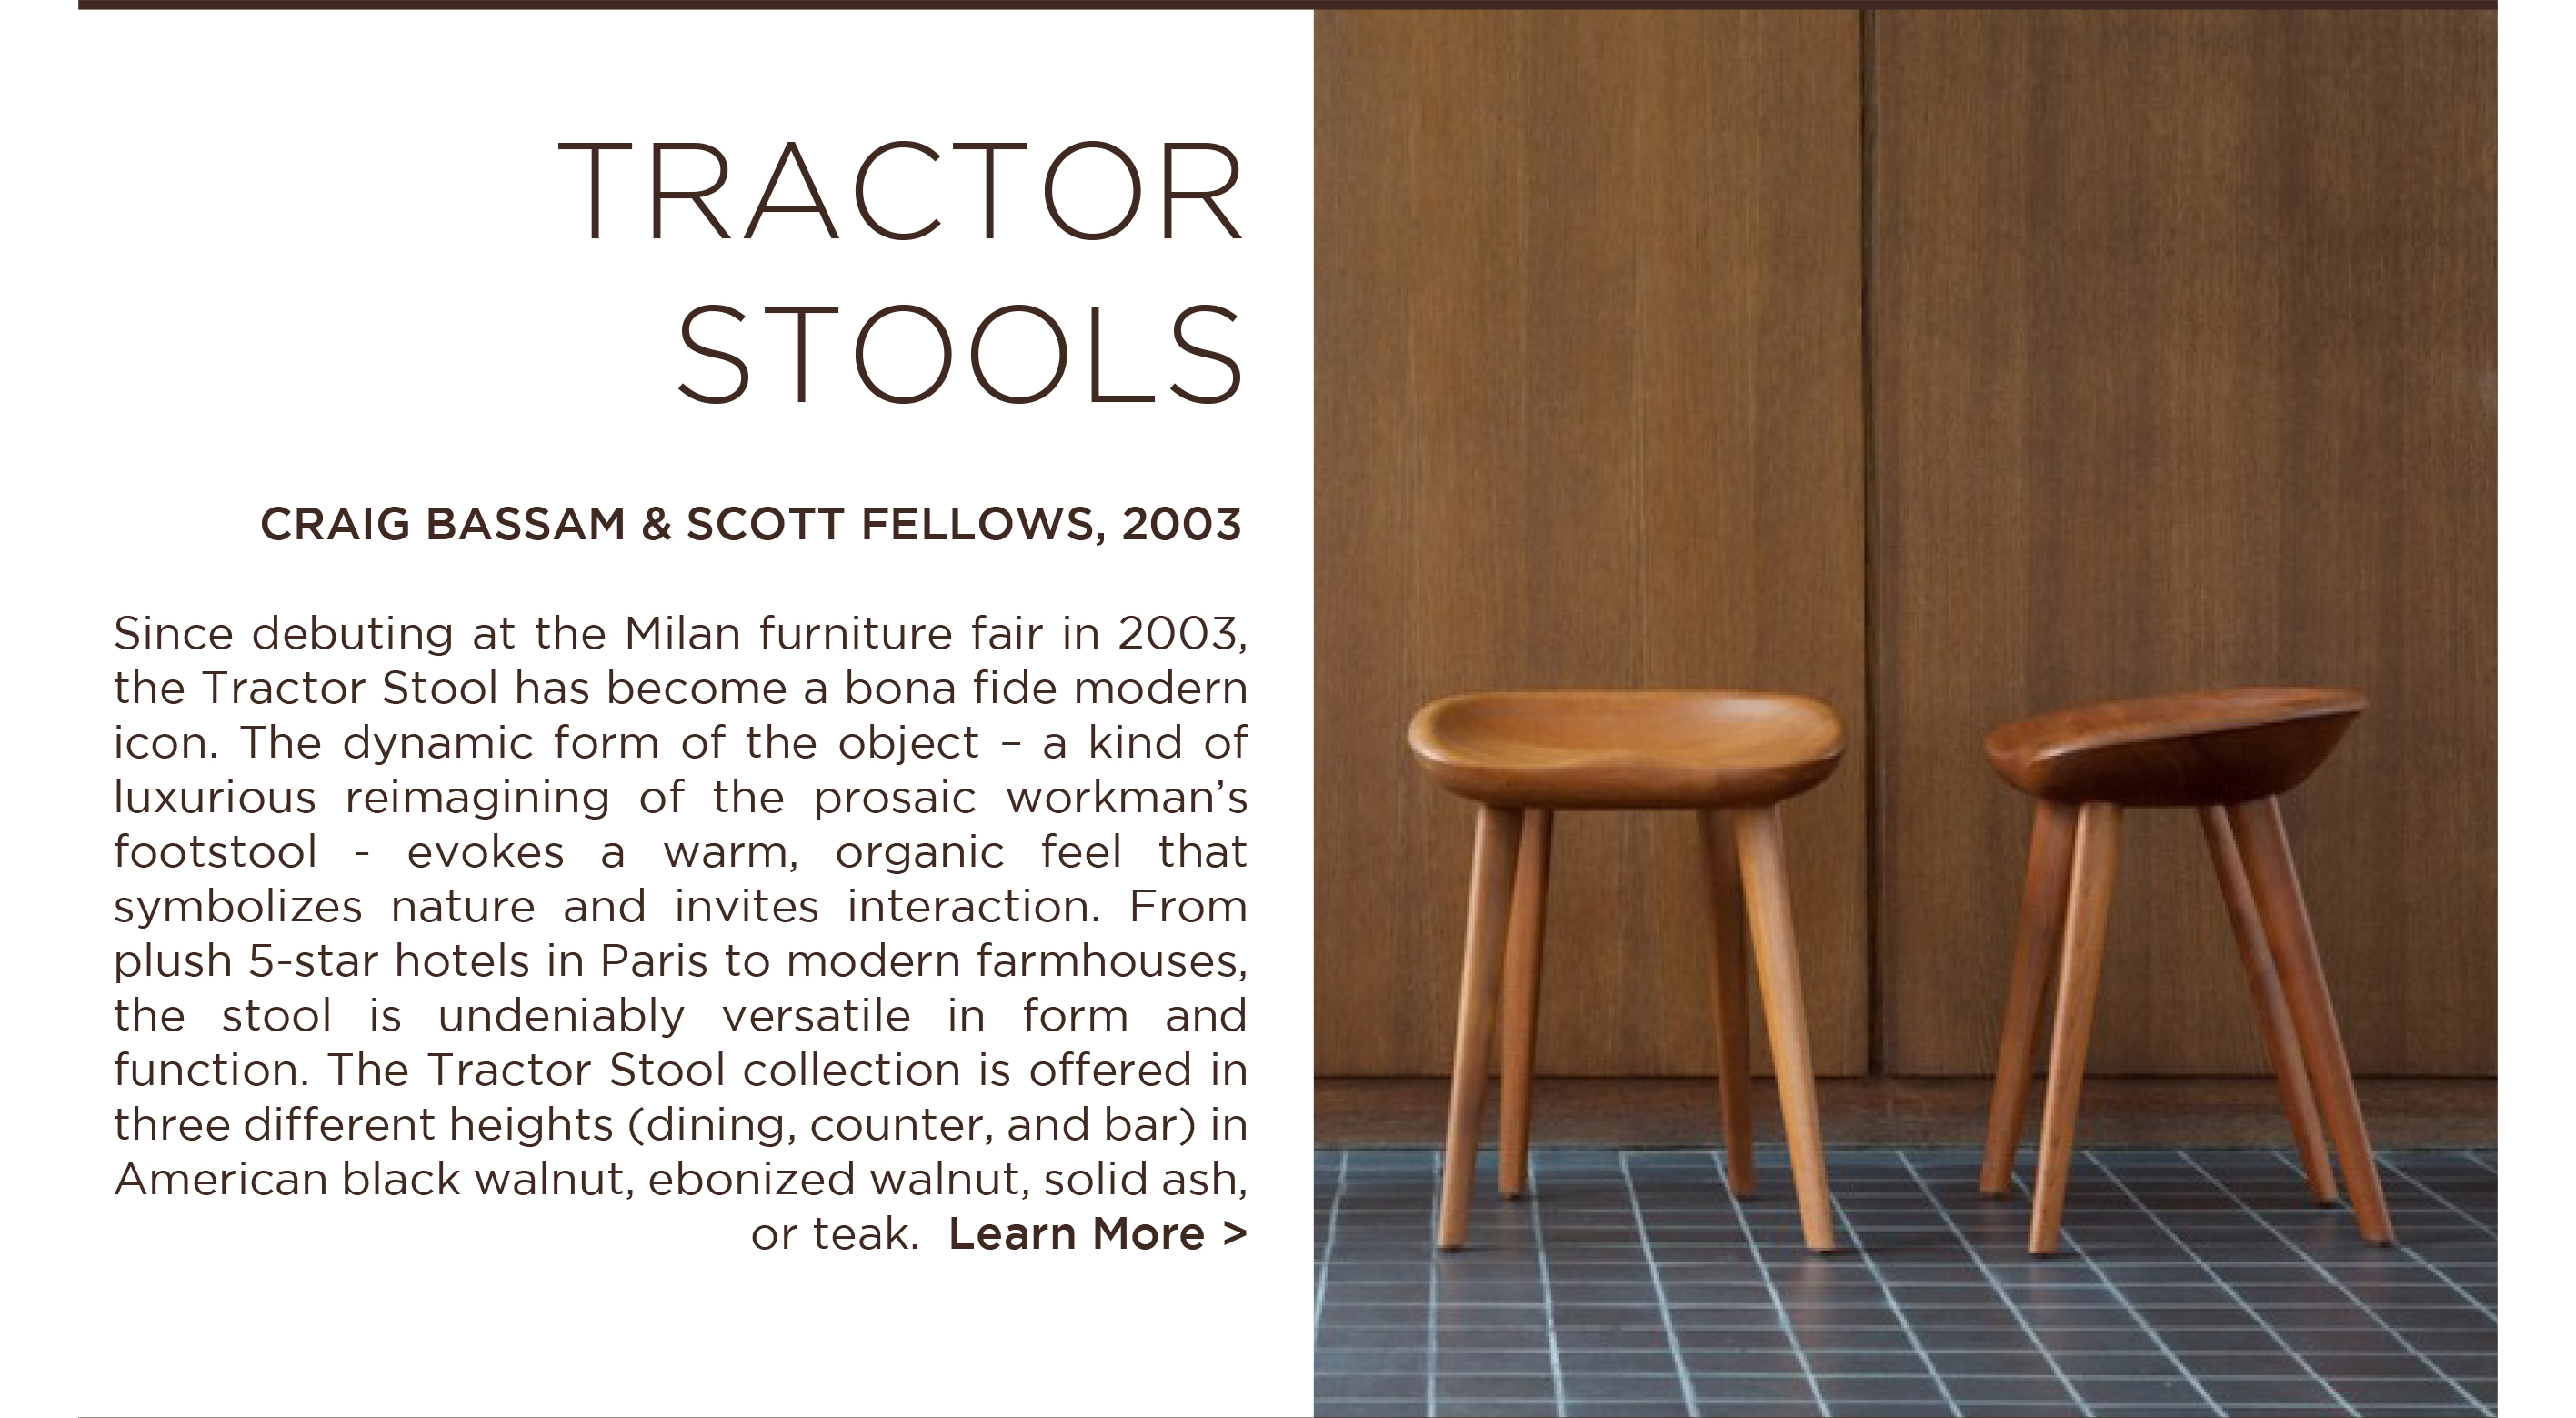 CB Tractor stool bassamfellows craig scott walnut dining stools designer furniture suite ny